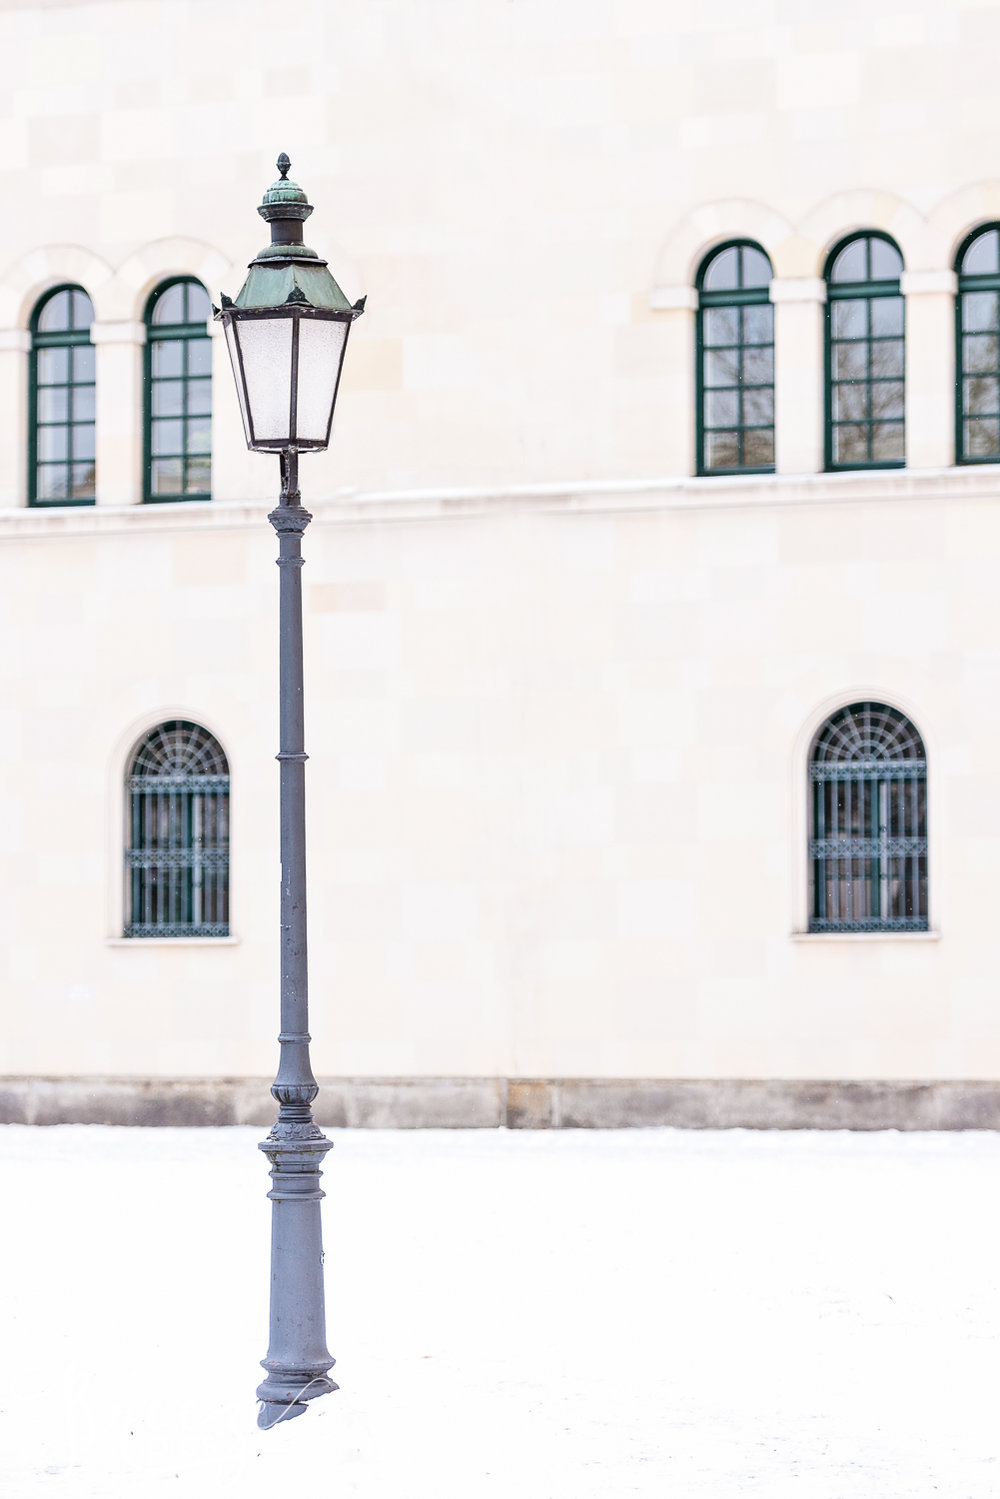 Munich_Winter_Lamp_post.jpg